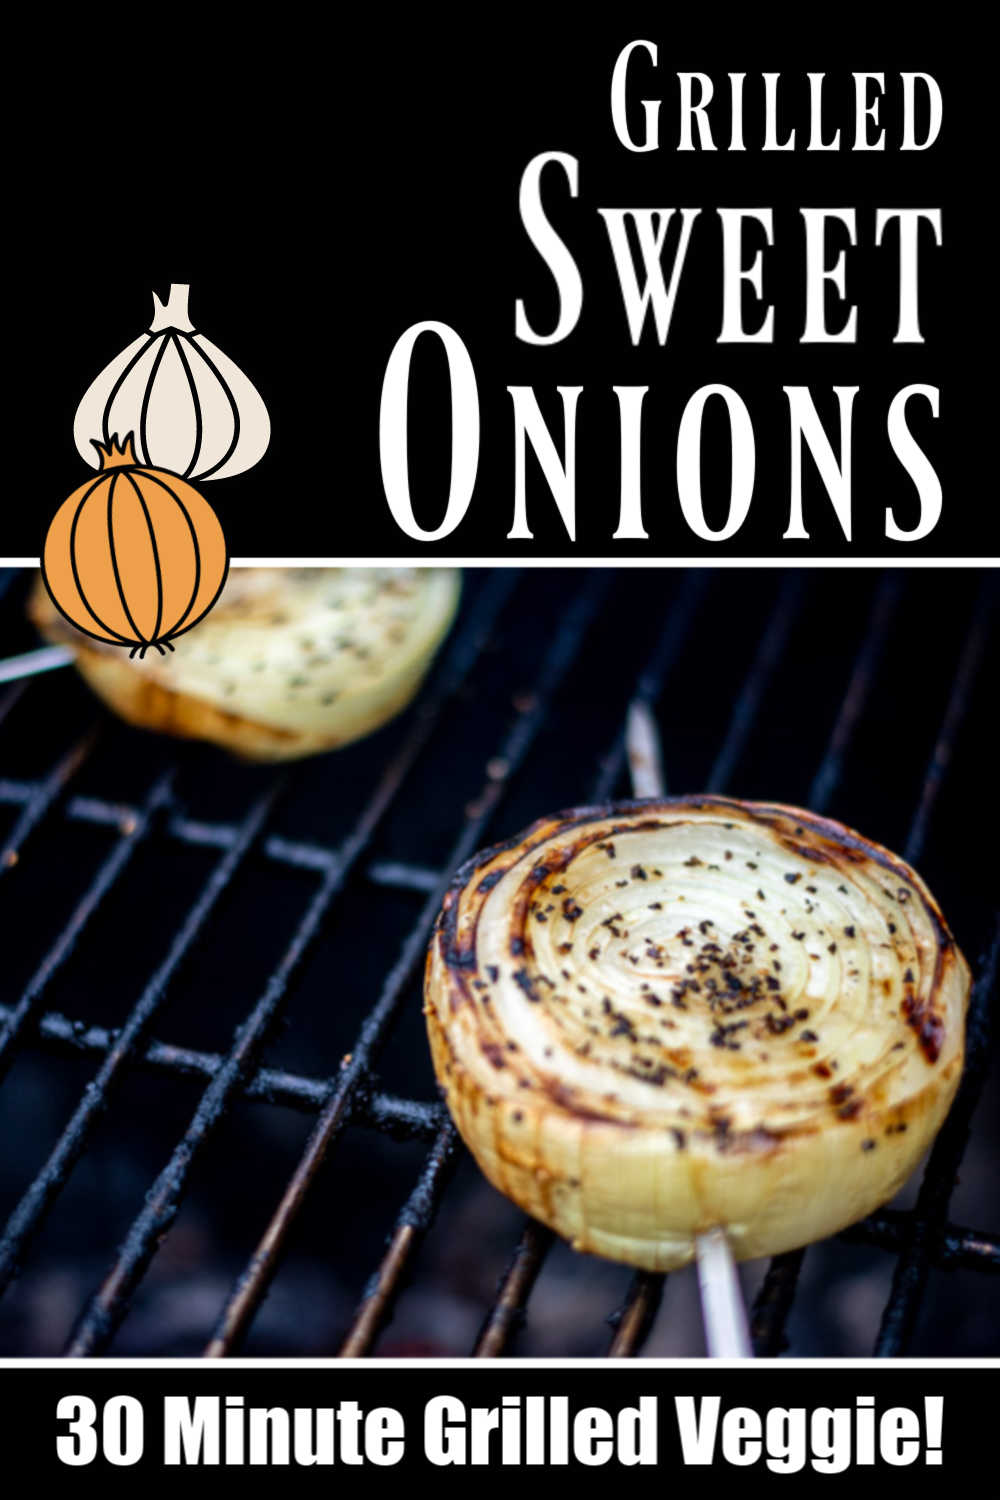 Grilled Sweet Onions - Perfect Side Dish!